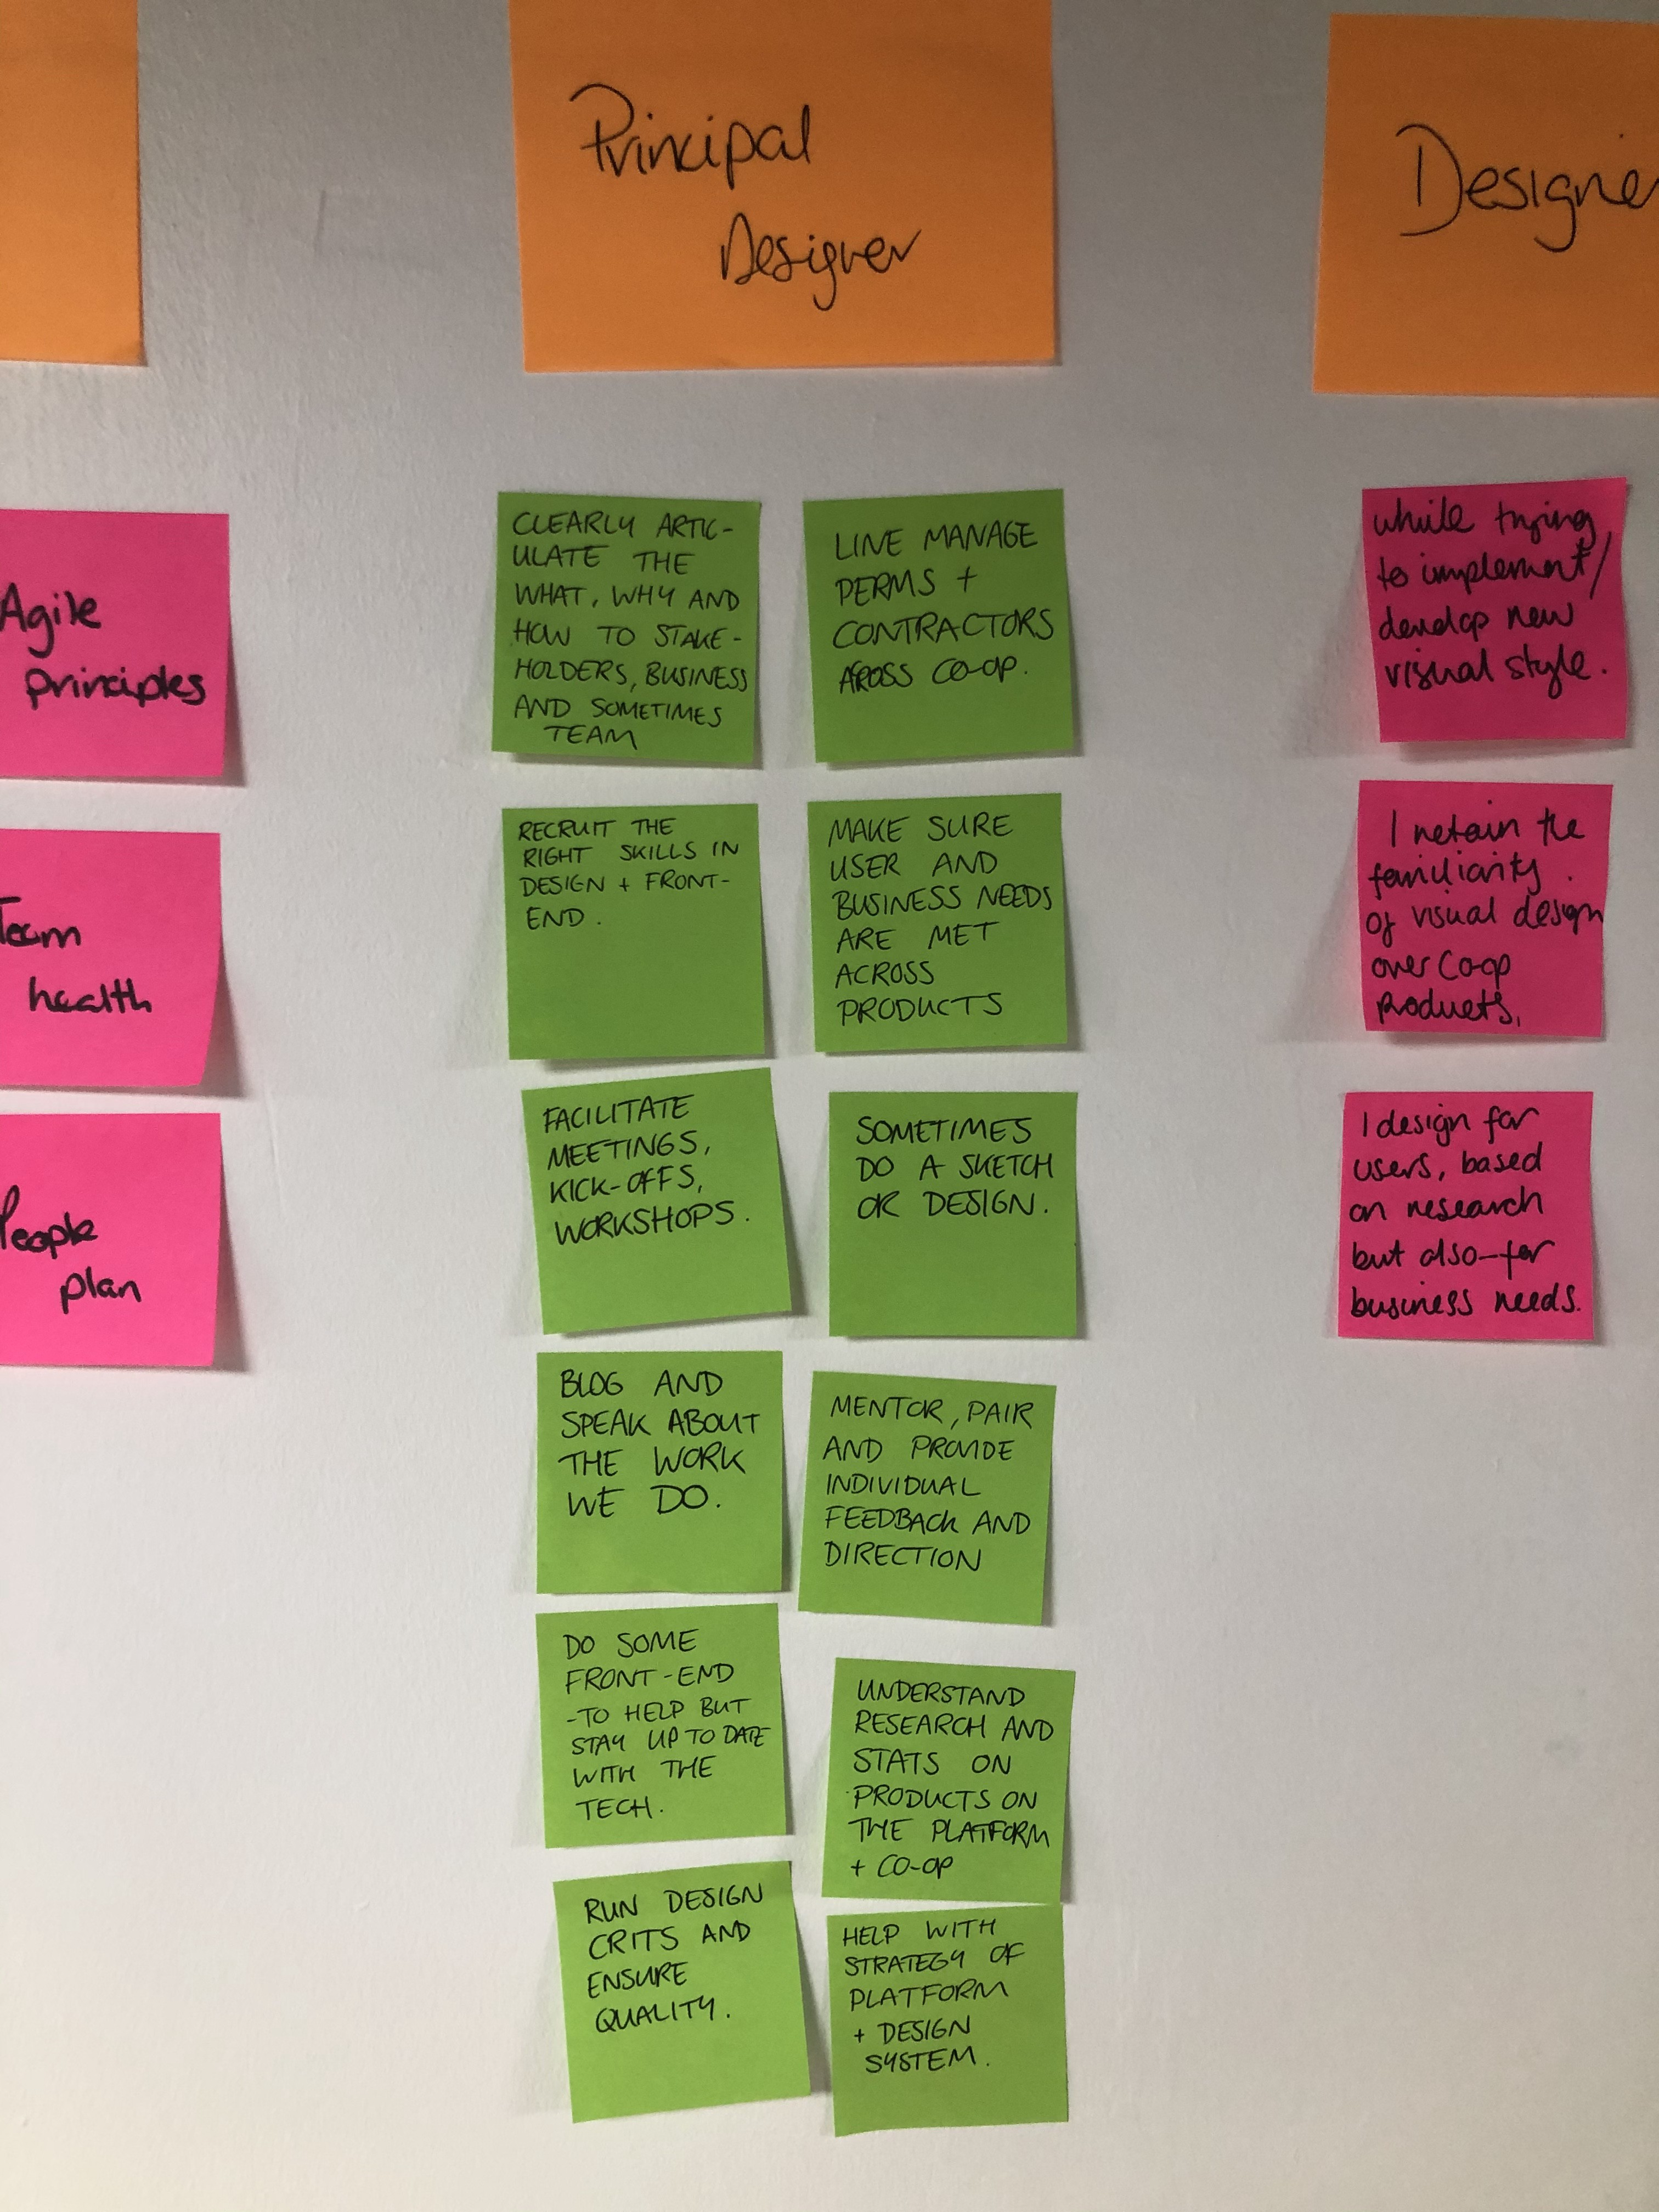 The post-it notes I wrote to explain what i do as a Principal Designer